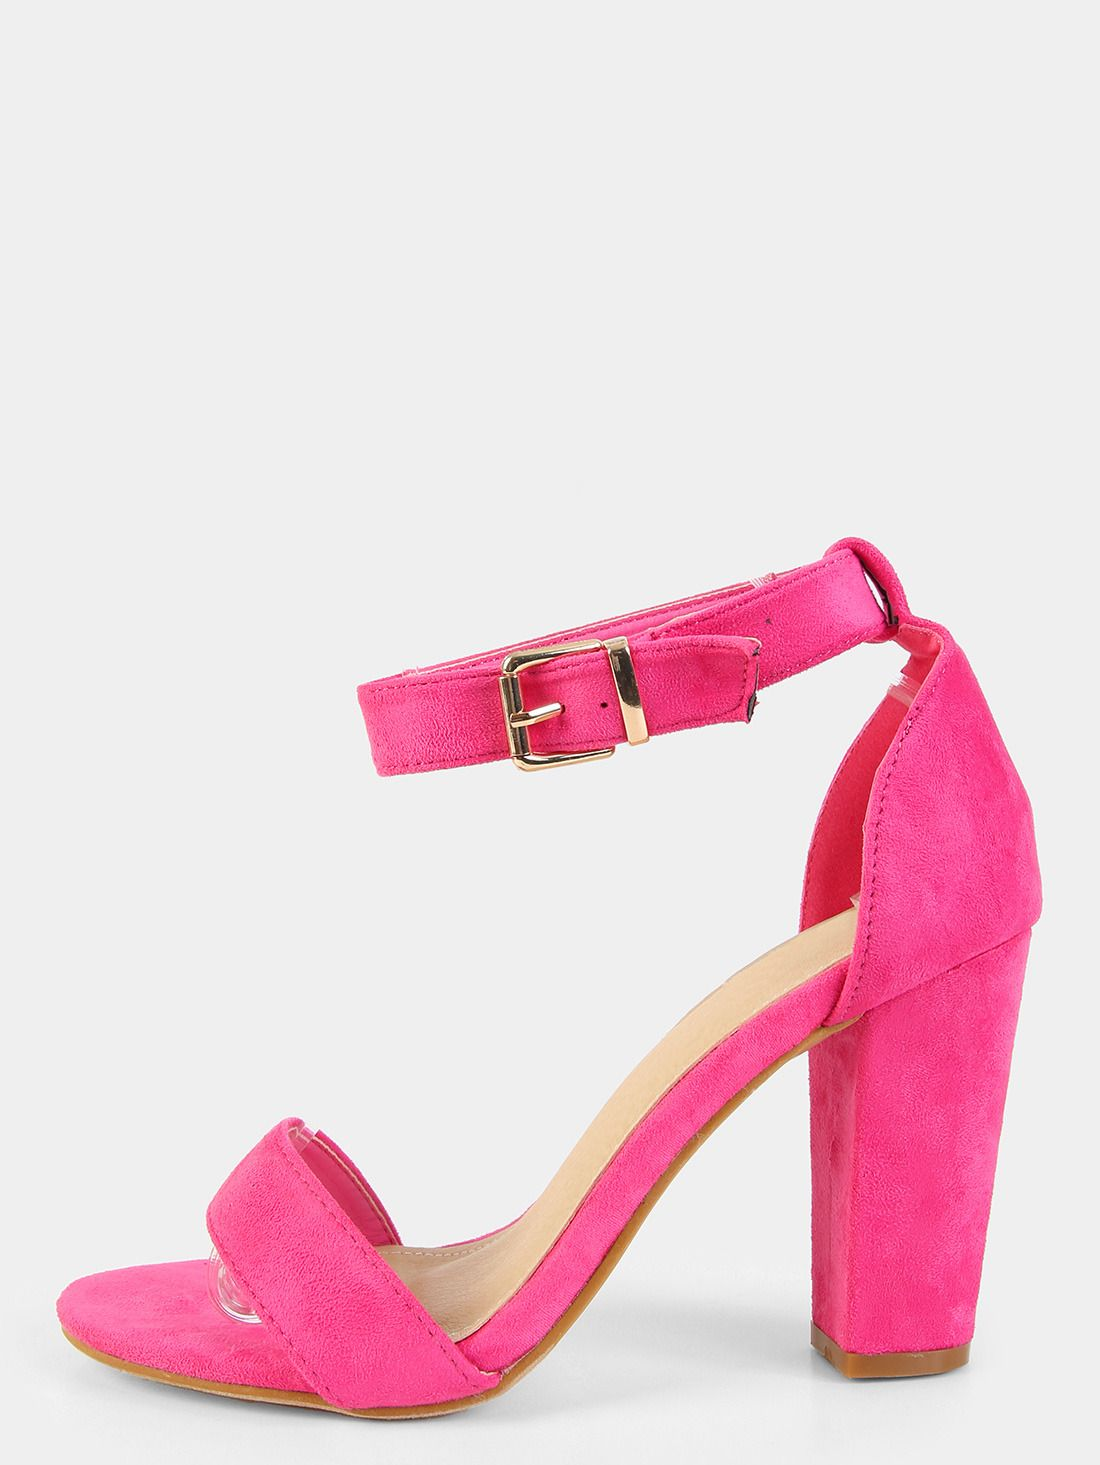 86c3d1cdcb8c Stacked heel and hot pink. These are pretty much my ideal shoe right now!